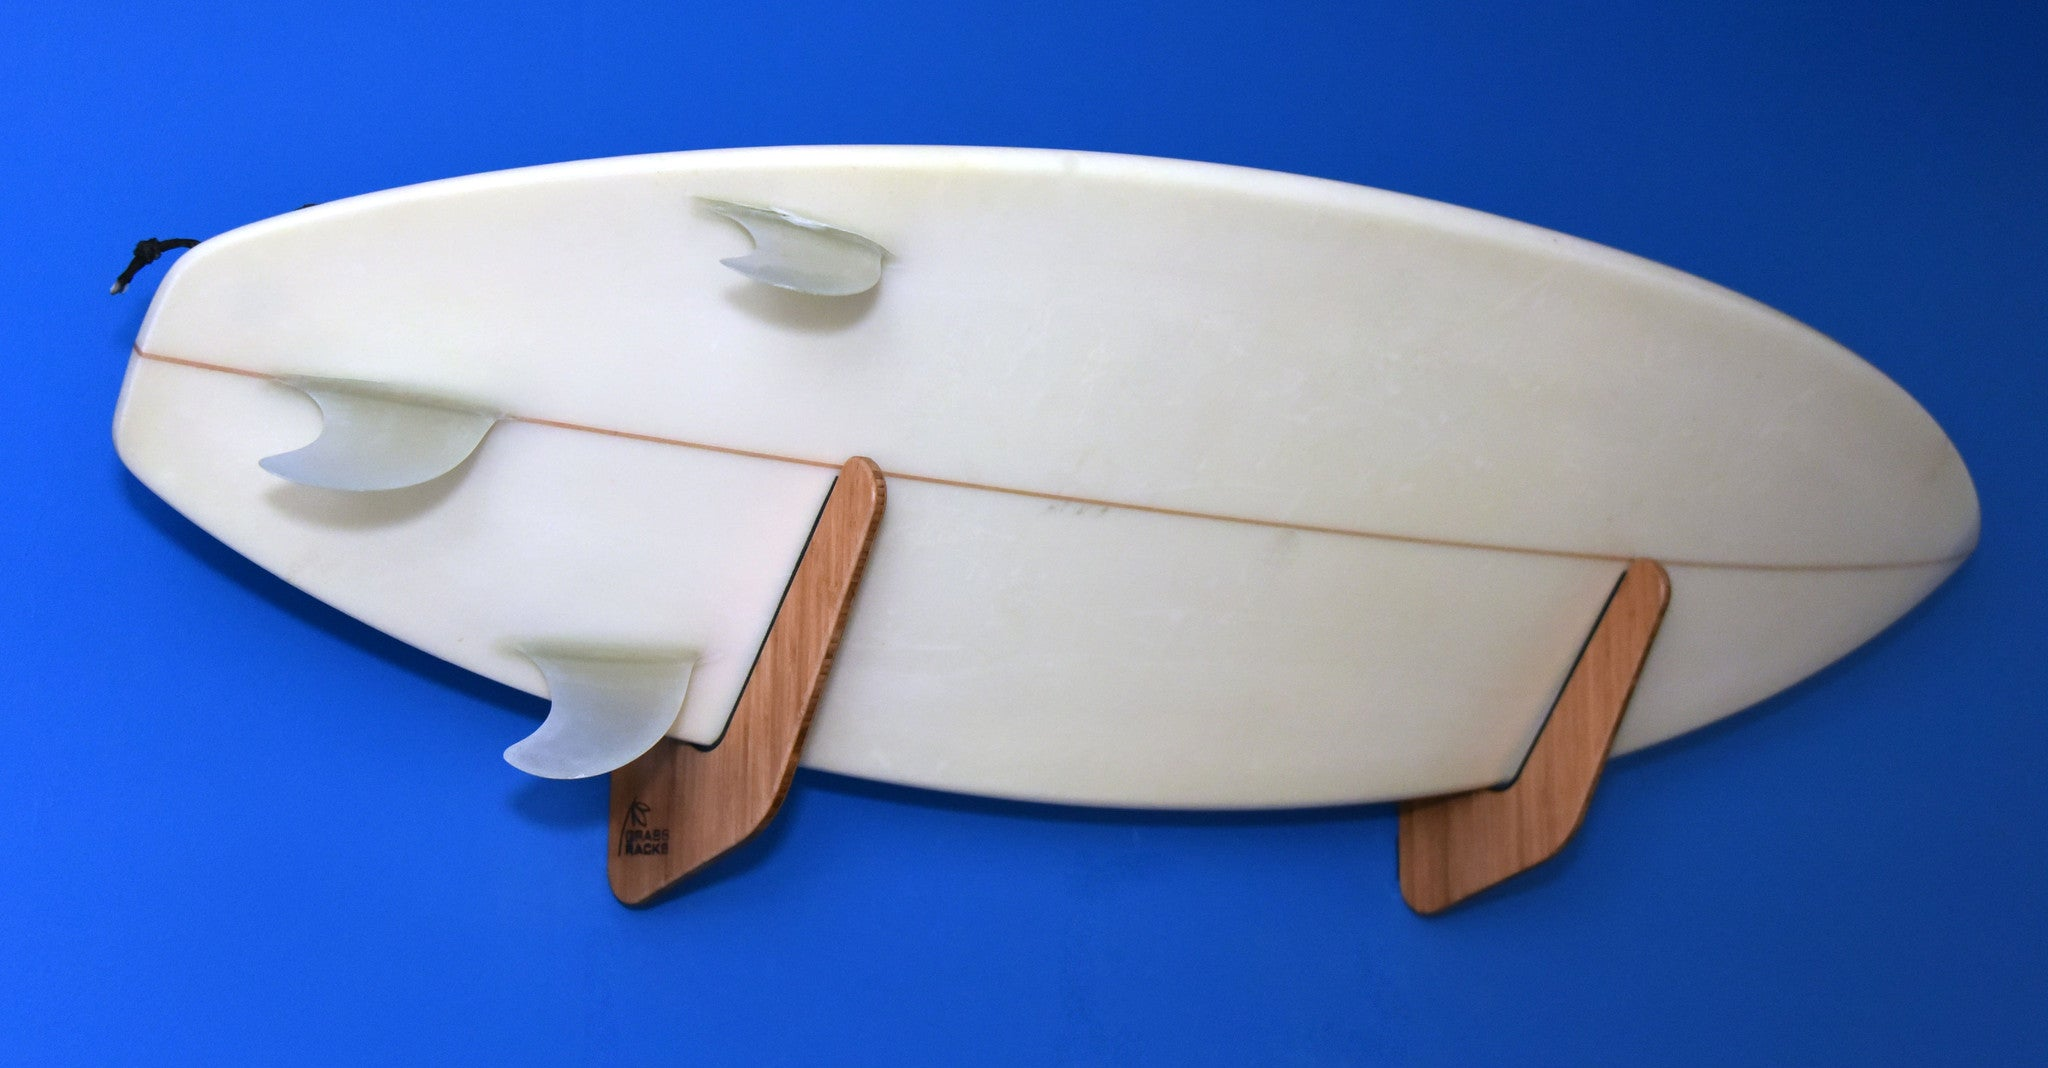 Surfboard Rack | Balance Board Rack | Horizontal Wall-Mounted Indoor Surf Rack - The Kaua'i Series